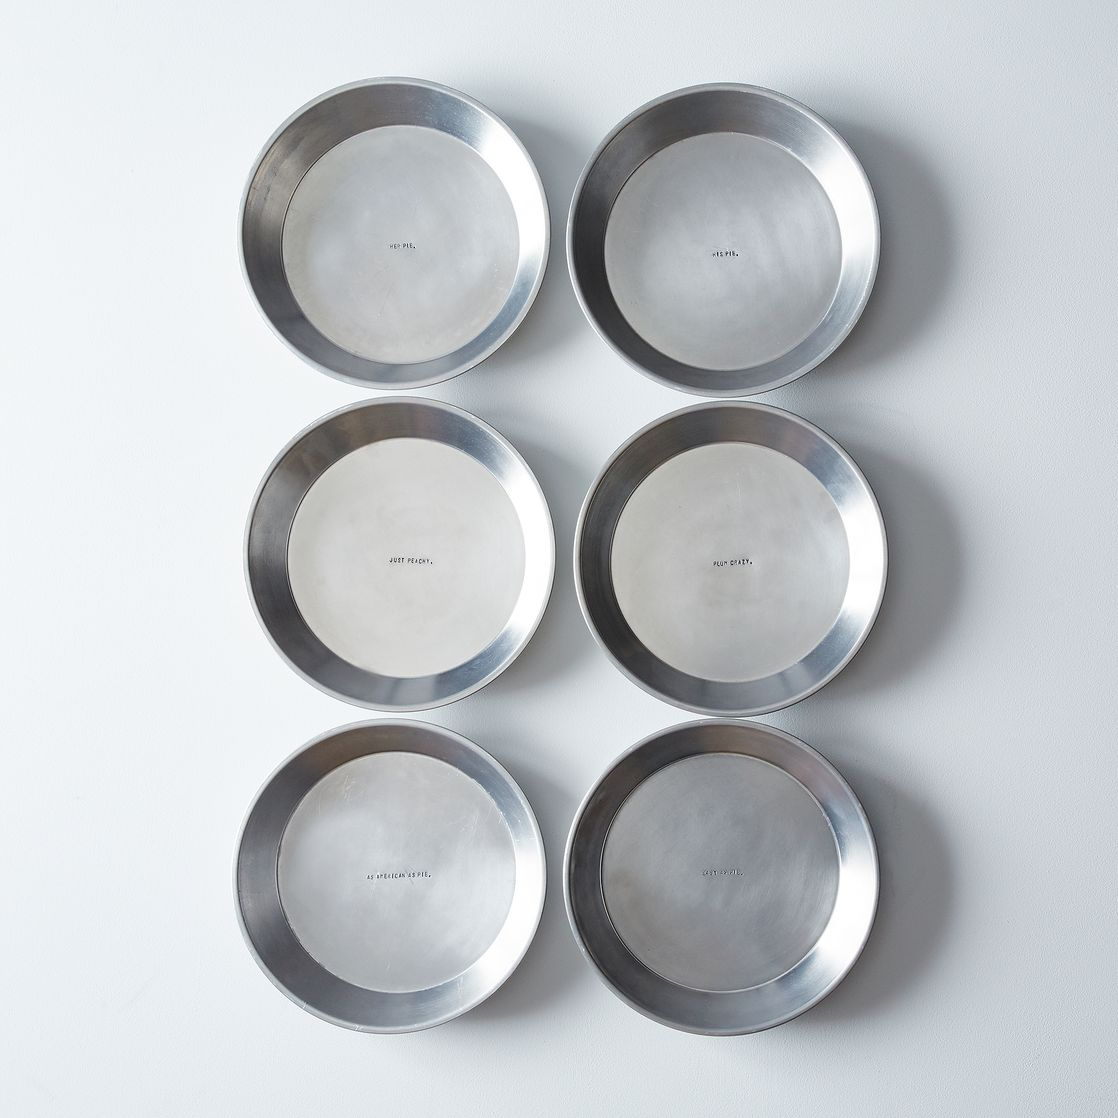 Hidden Quote Summer Pie Plates - Pie Pan -- Exclusives - Designs By Kace | Shop Food52 on Food52